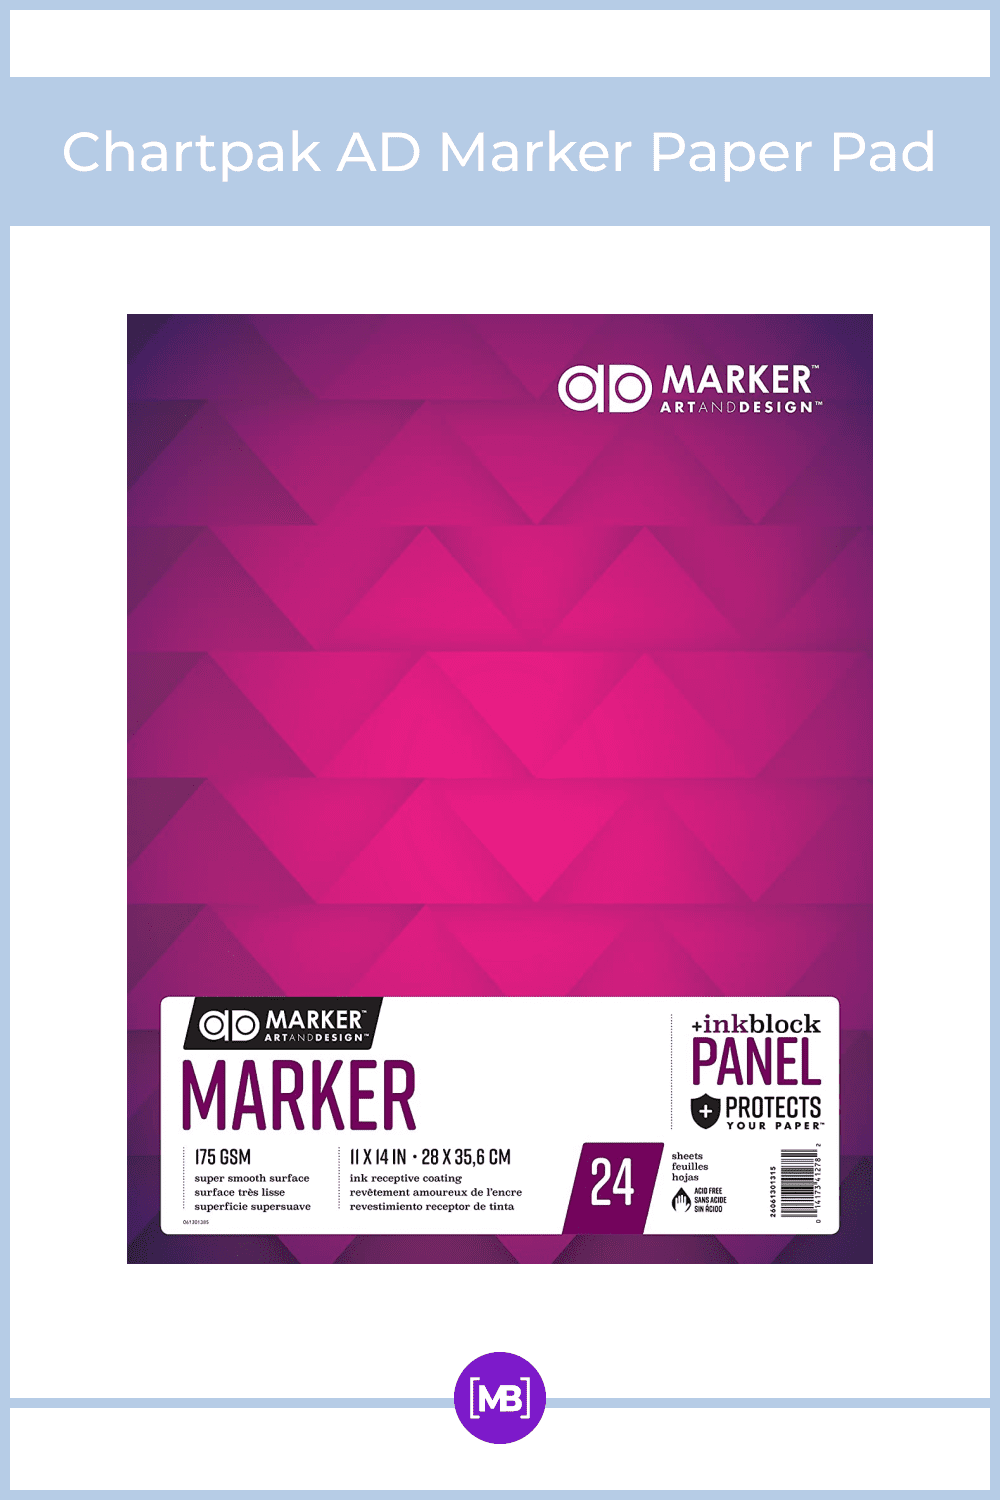 Bright white, smooth coated paper is ideal for marker rendering.